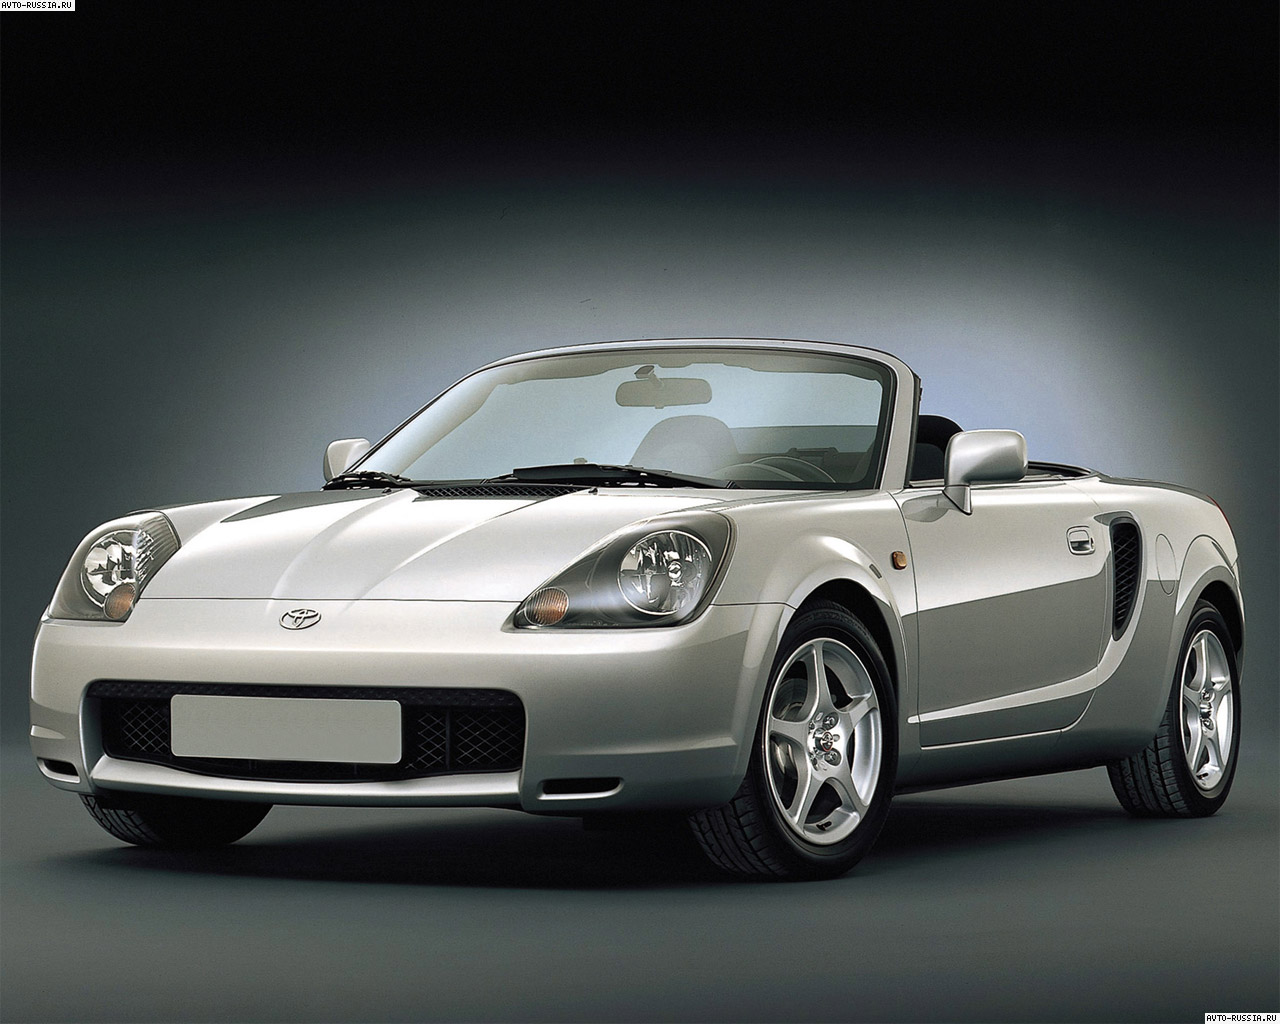 toyota_mr-s_1280x1024.jpg